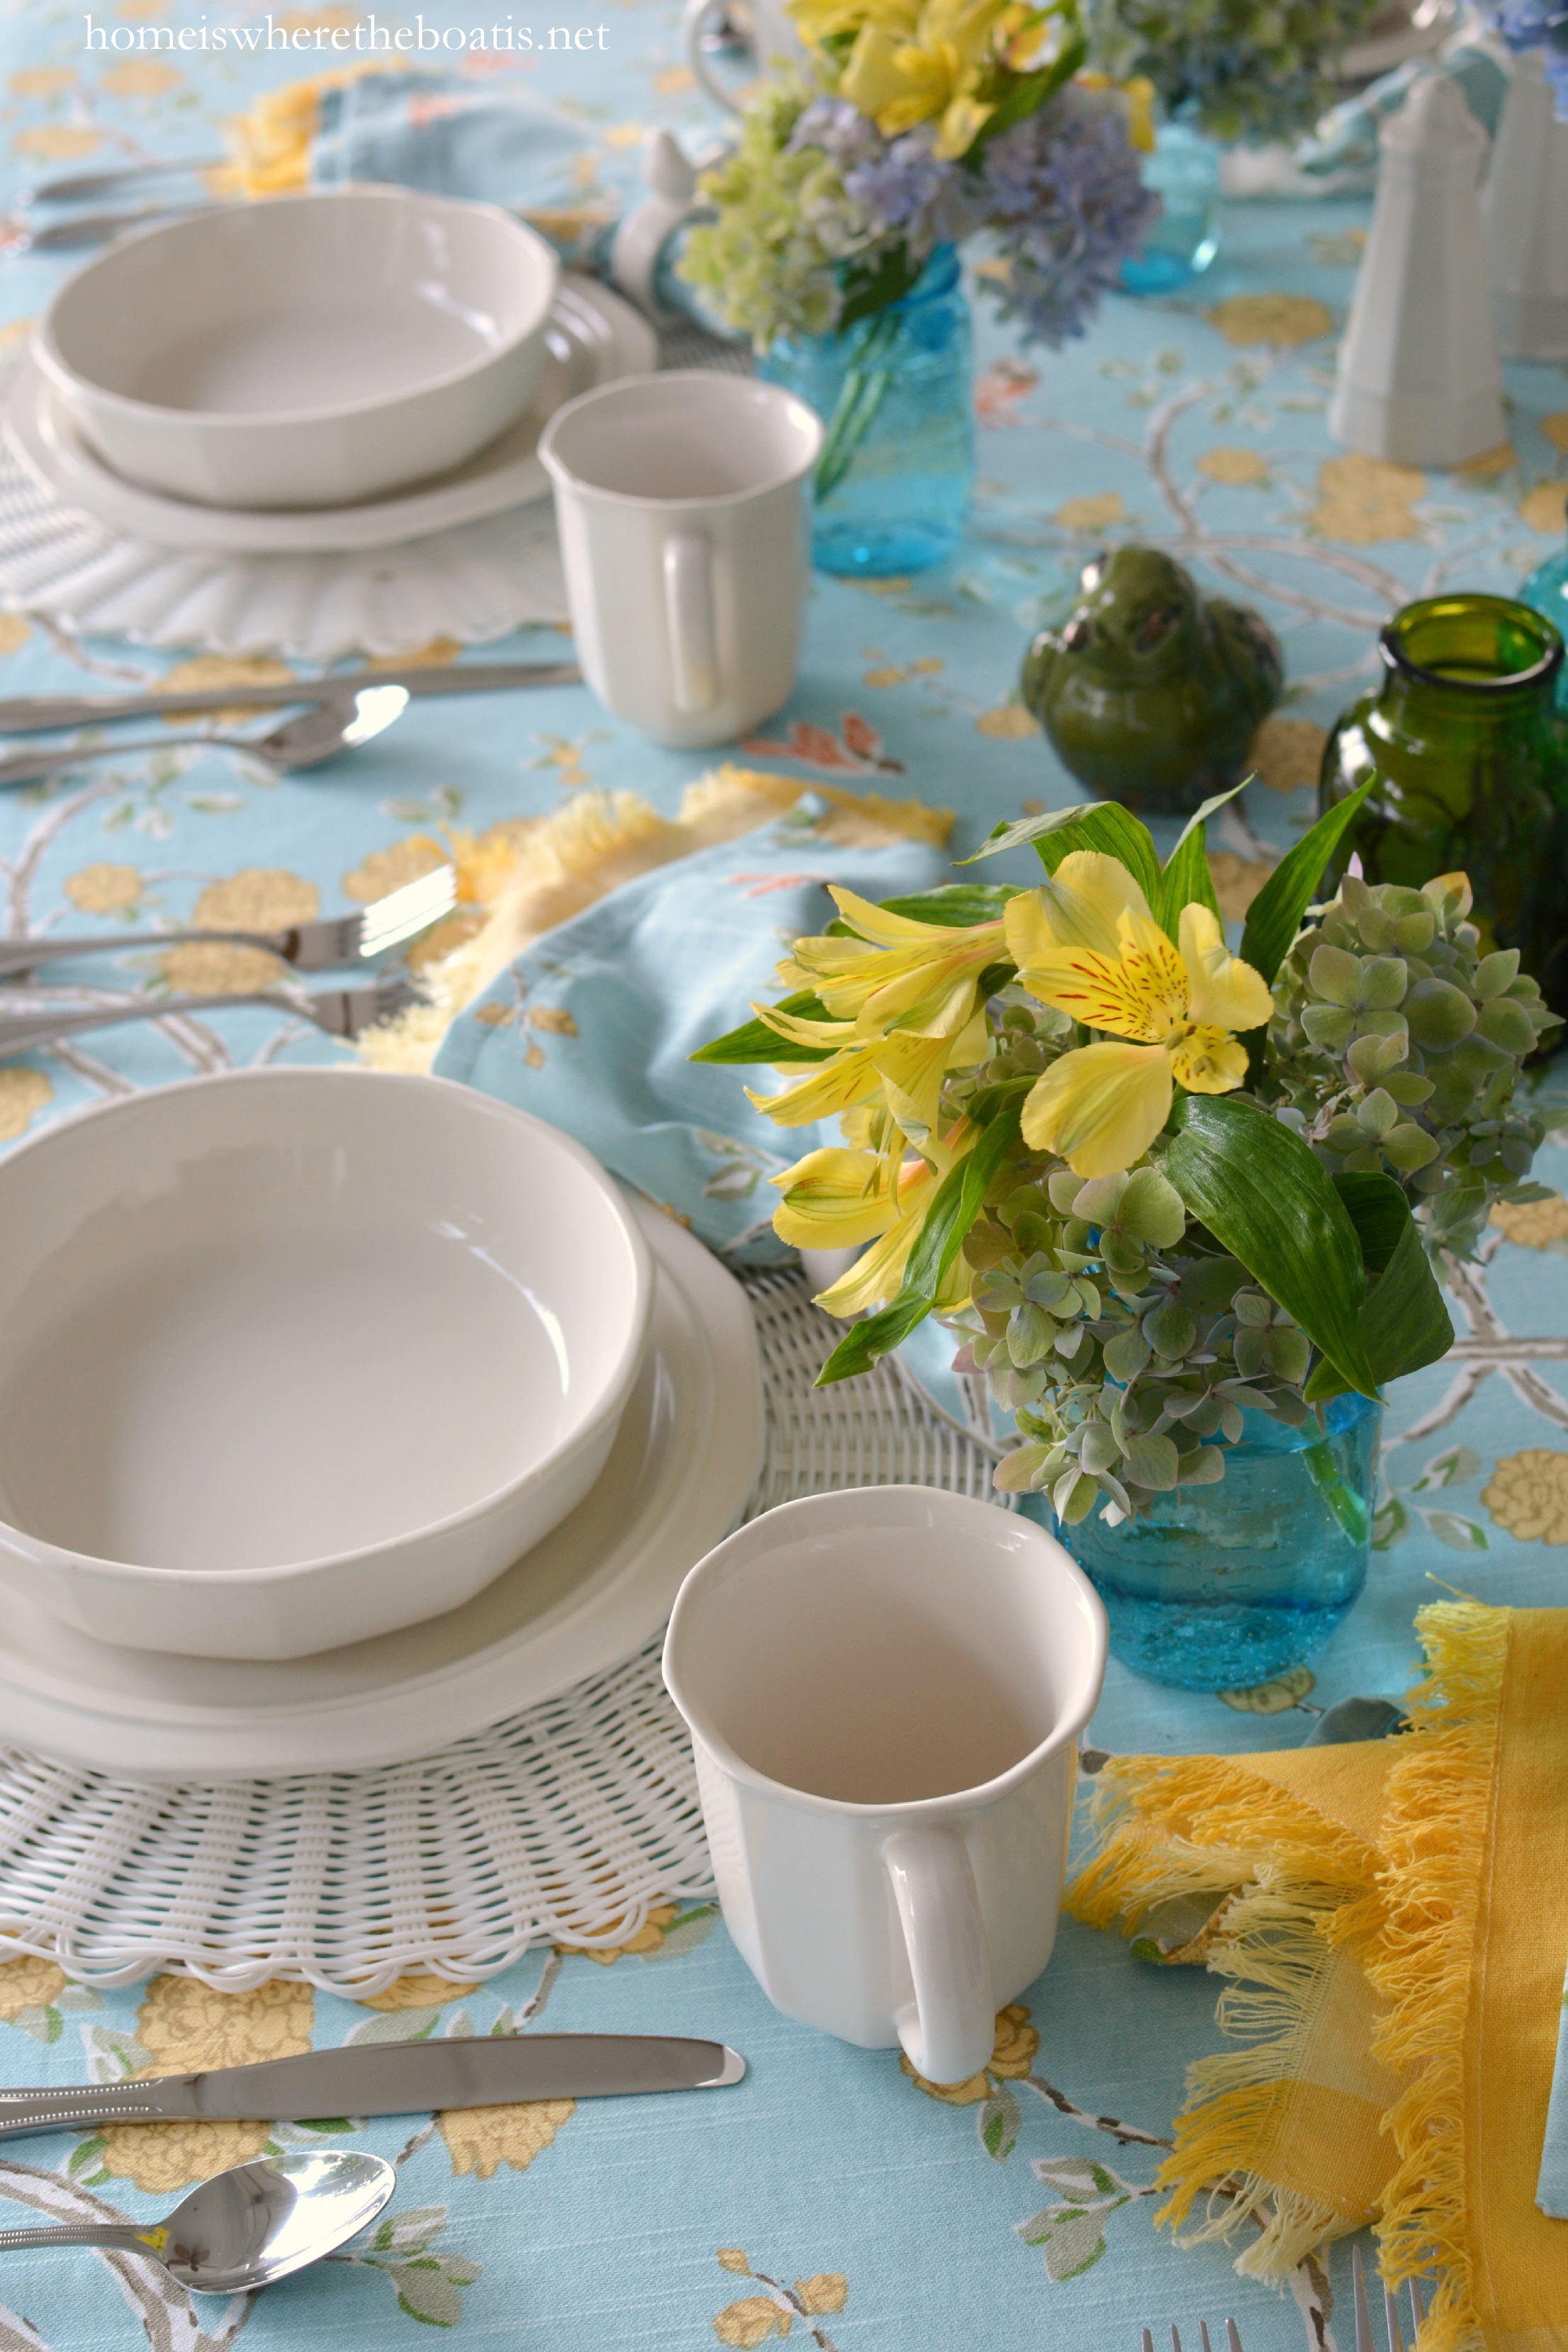 And a set of 3 Elements green ceramic birds are nesting with the flowers at the table. & At the Table: Birds Blooms and Pfaltzgraff Heritage Dinnerware ...